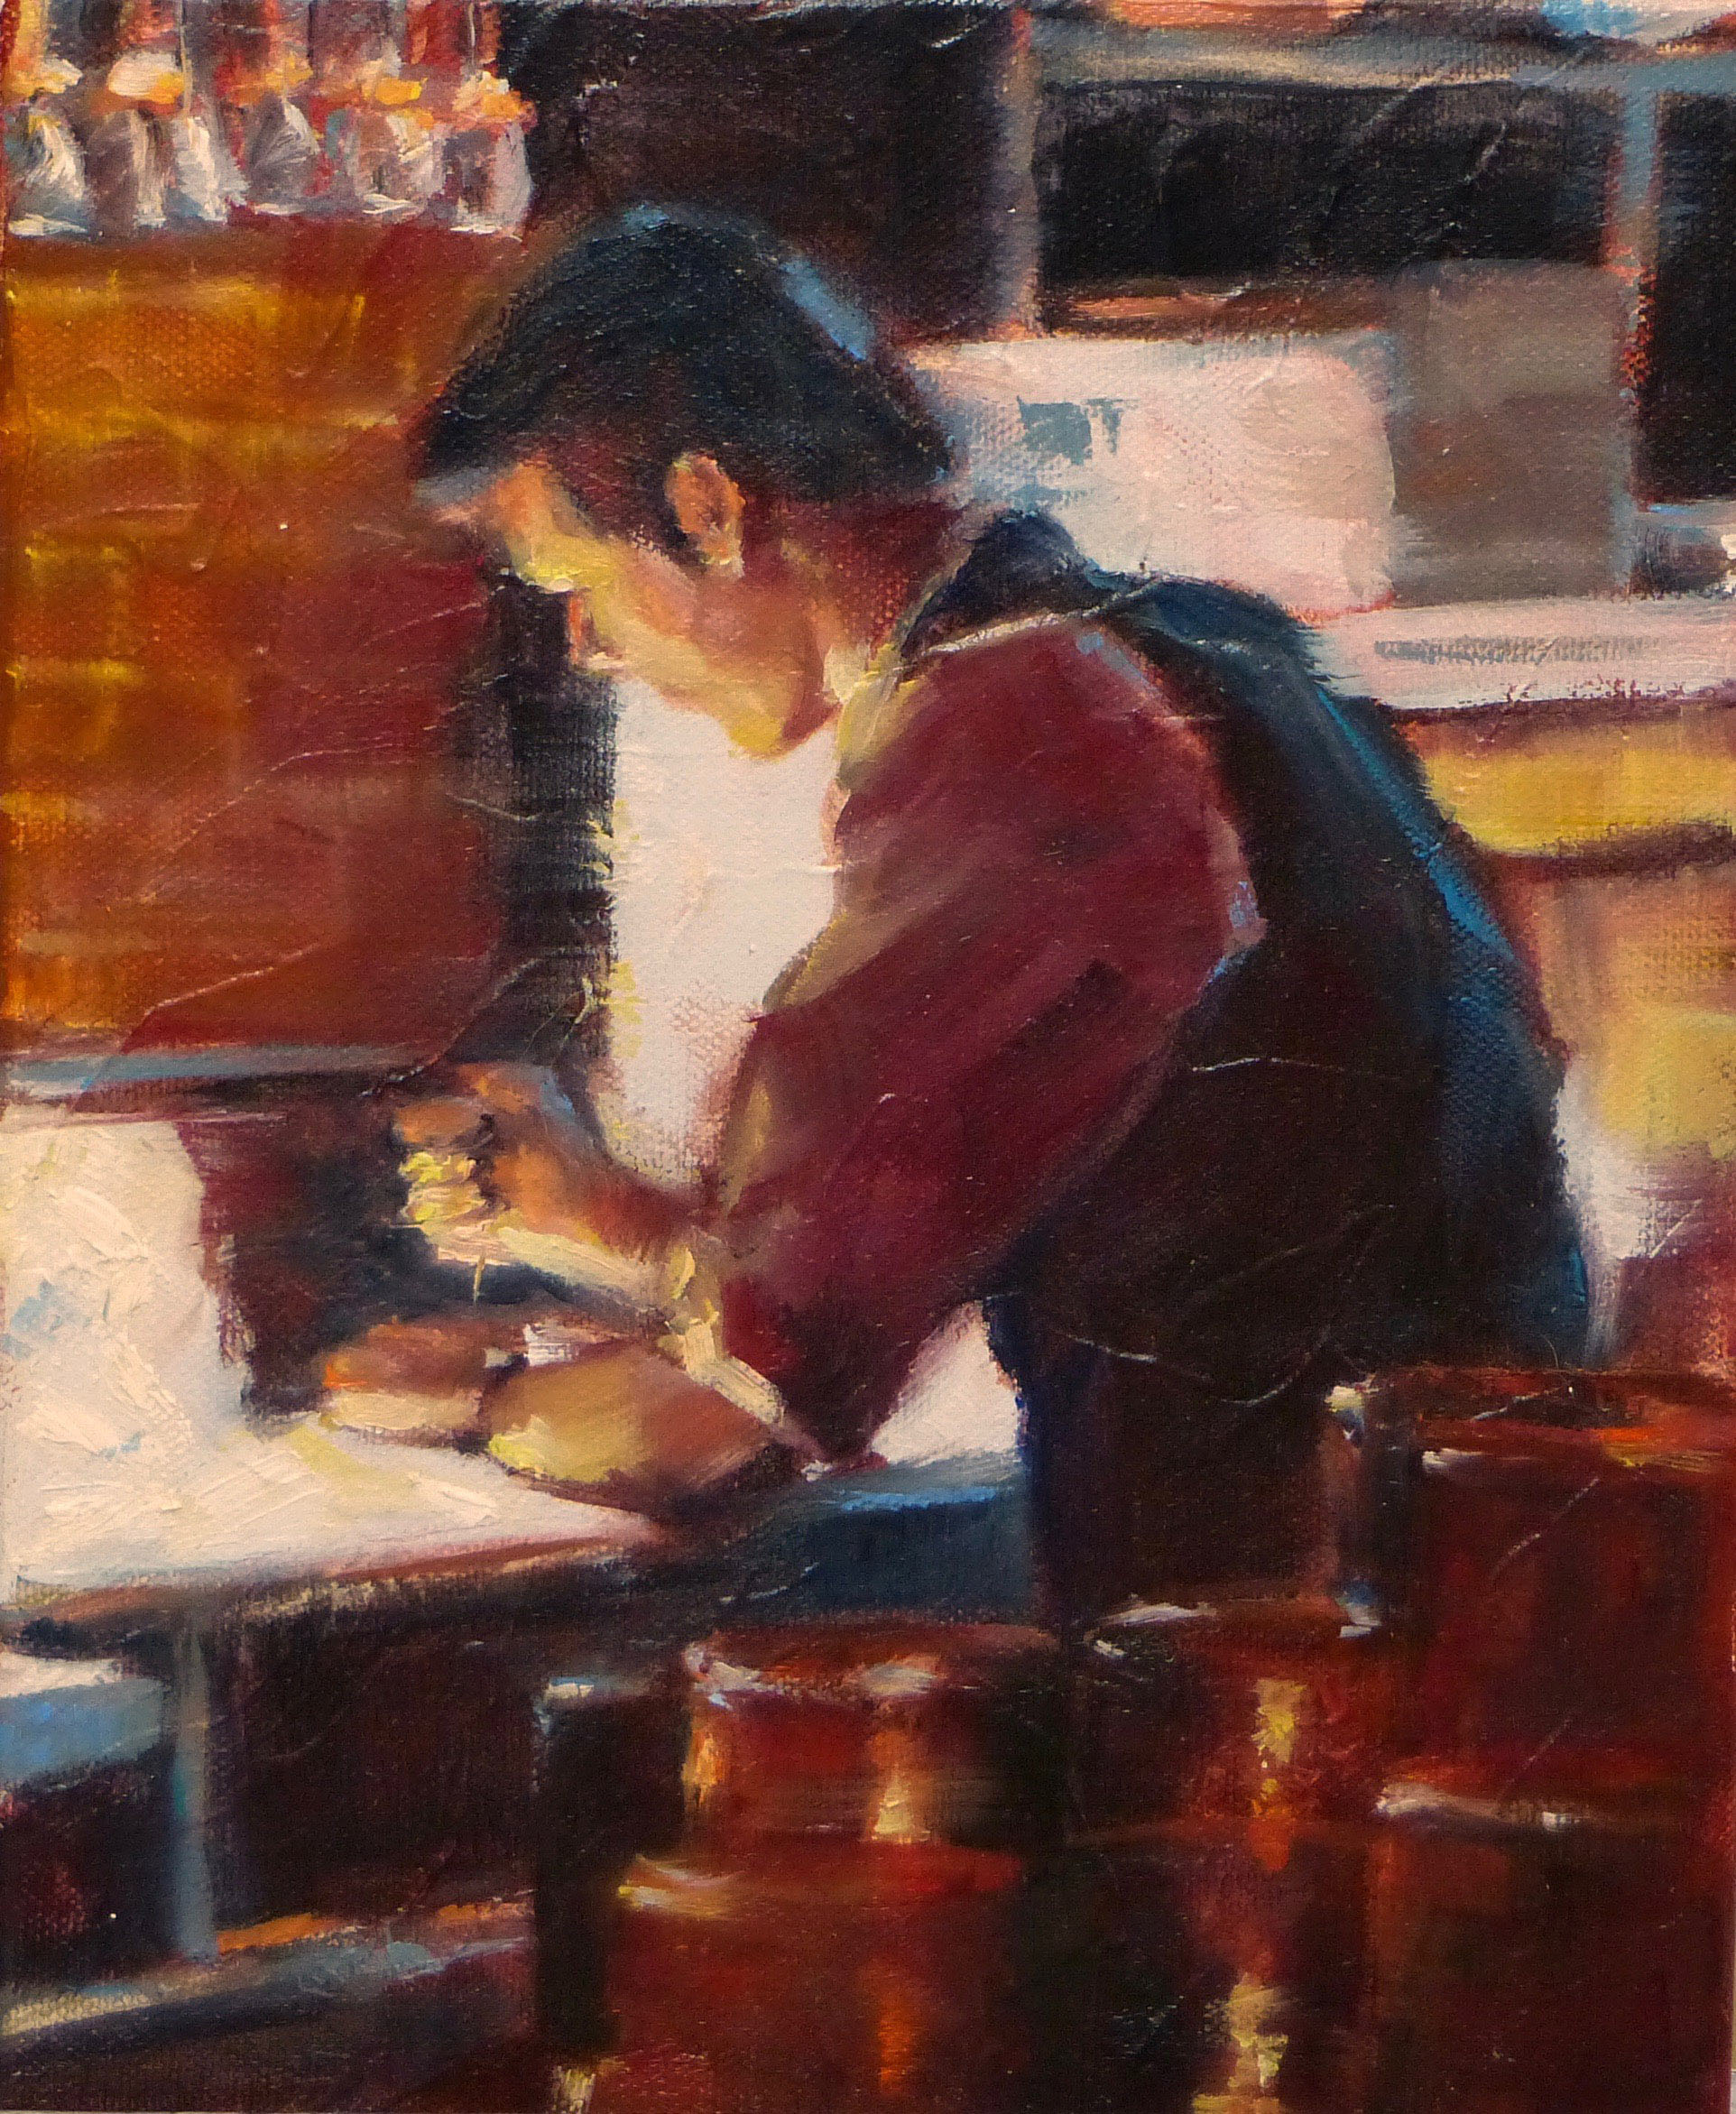 """Bartender Chipping Ice"" by Greta Mattingly, Oil, 10x8in, 2018, $400"